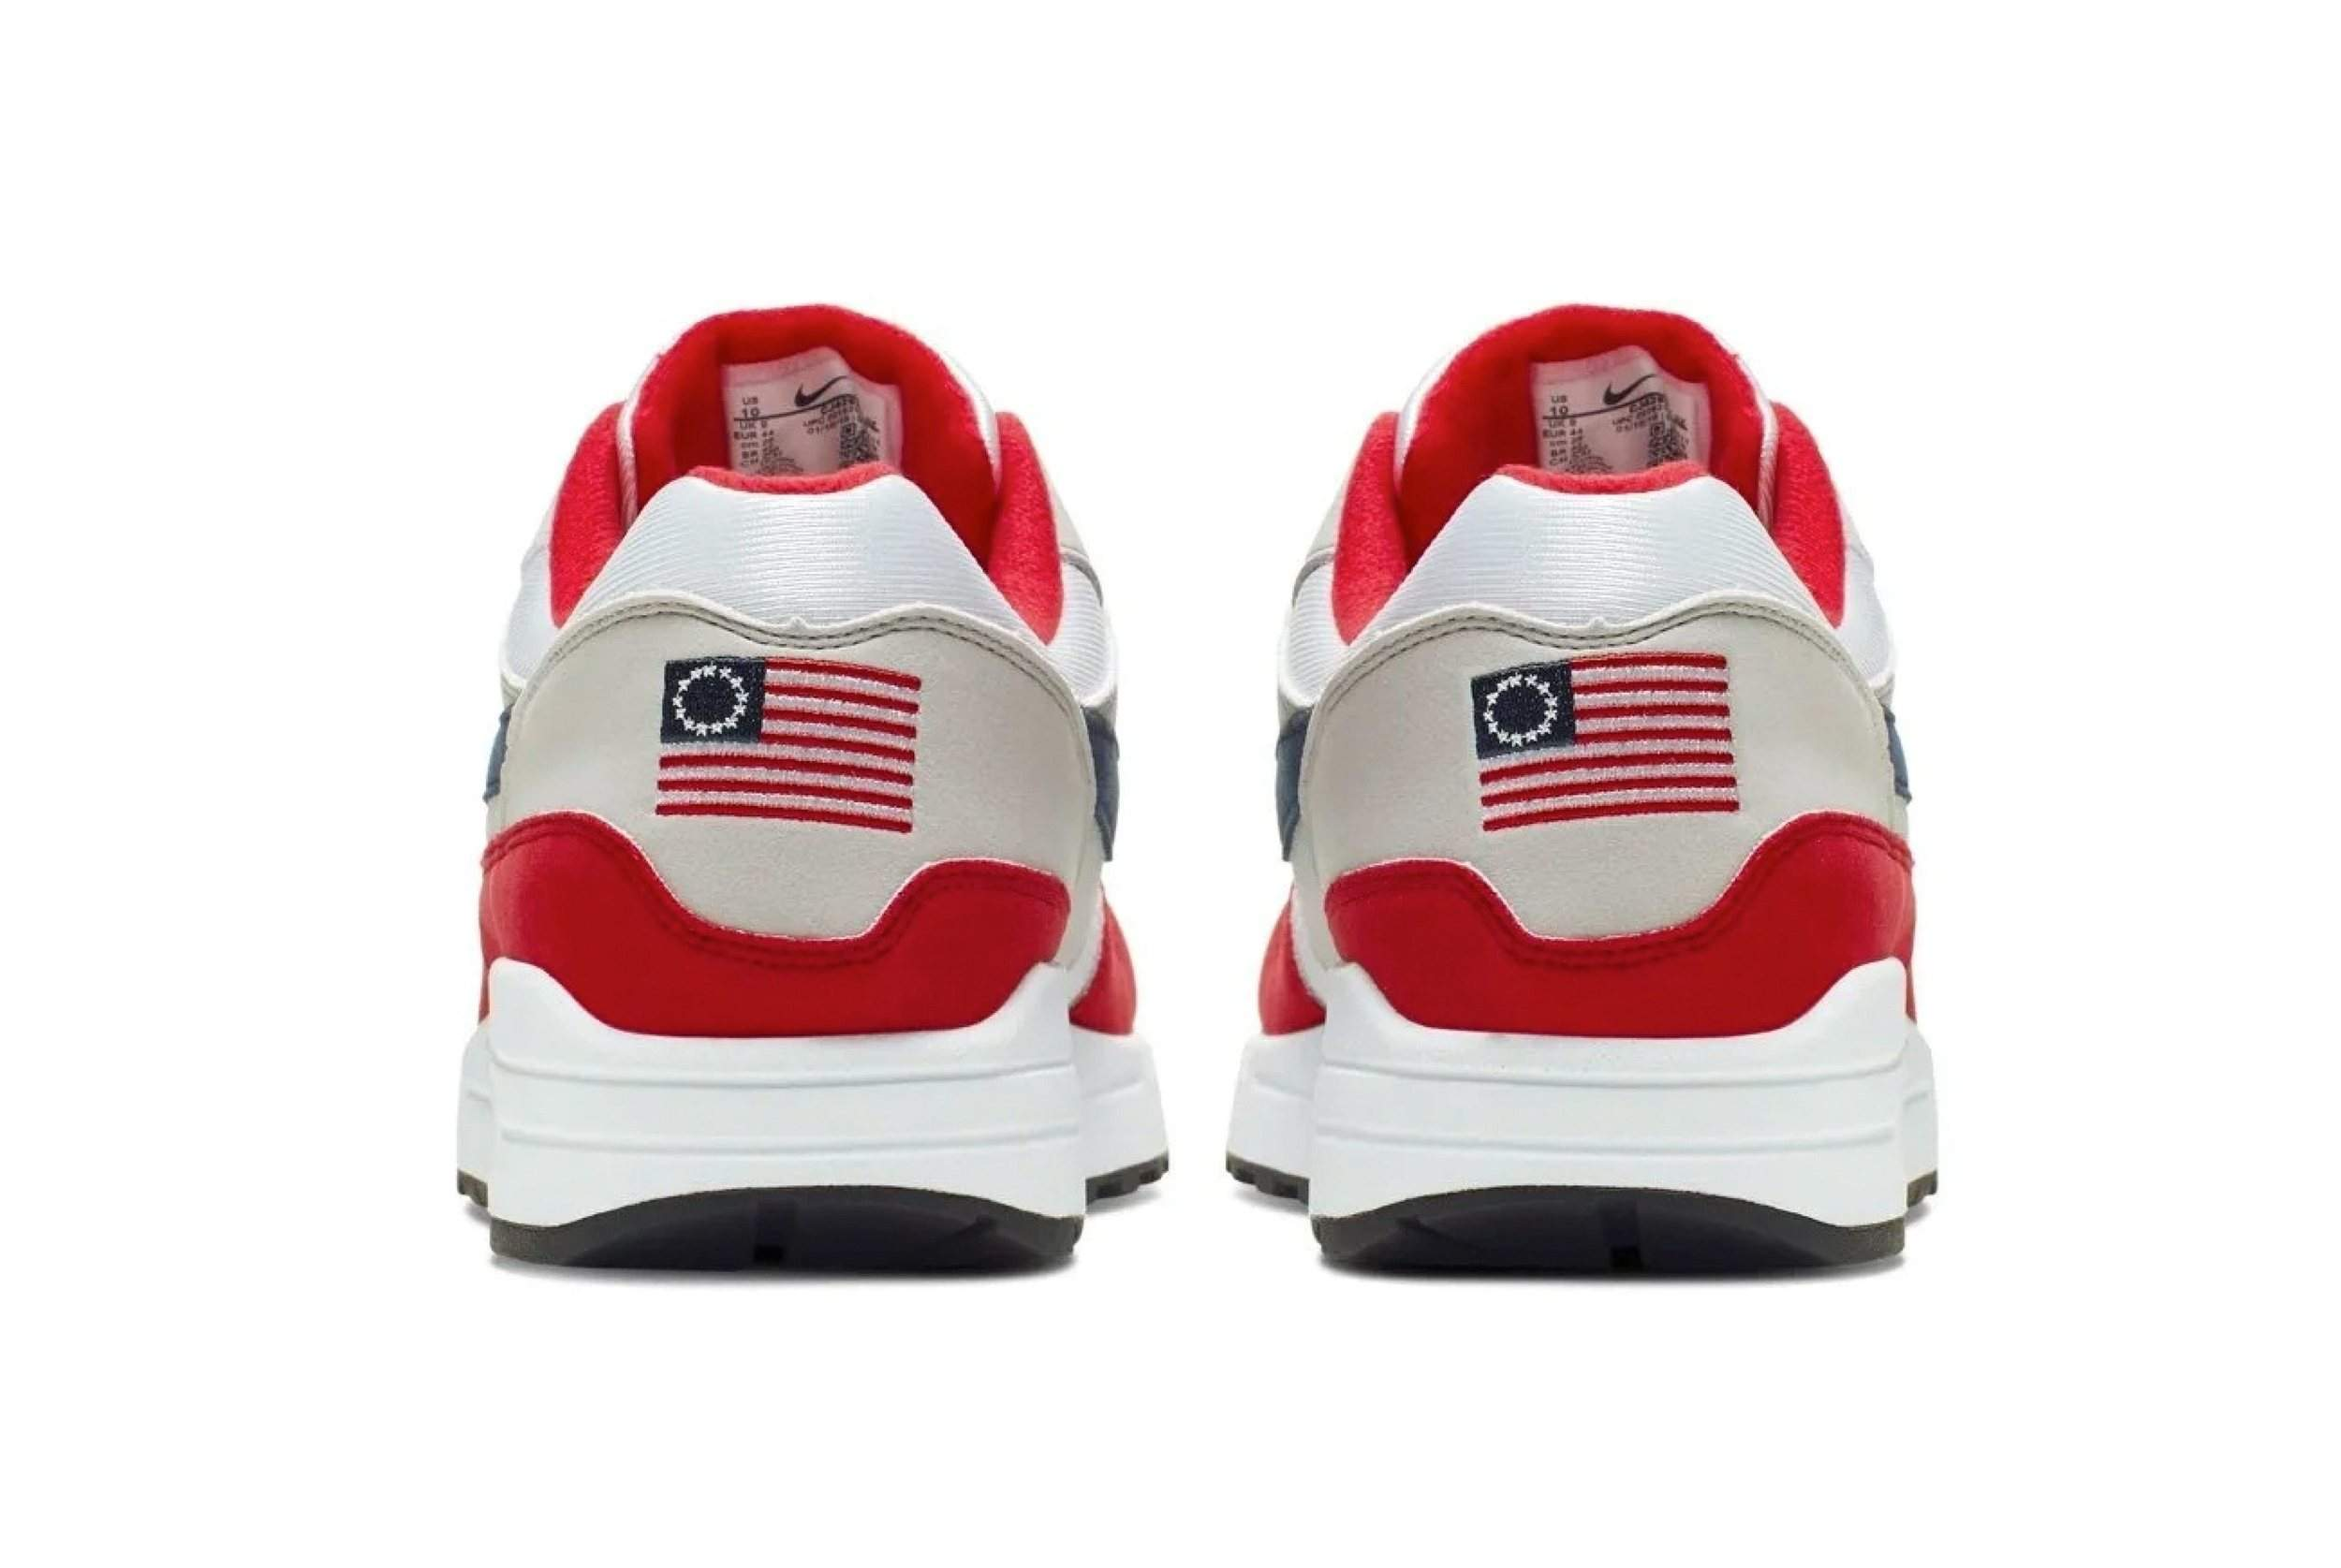 Colin Kaepernick stirs new controversy for Nike's Air Max 1 USA